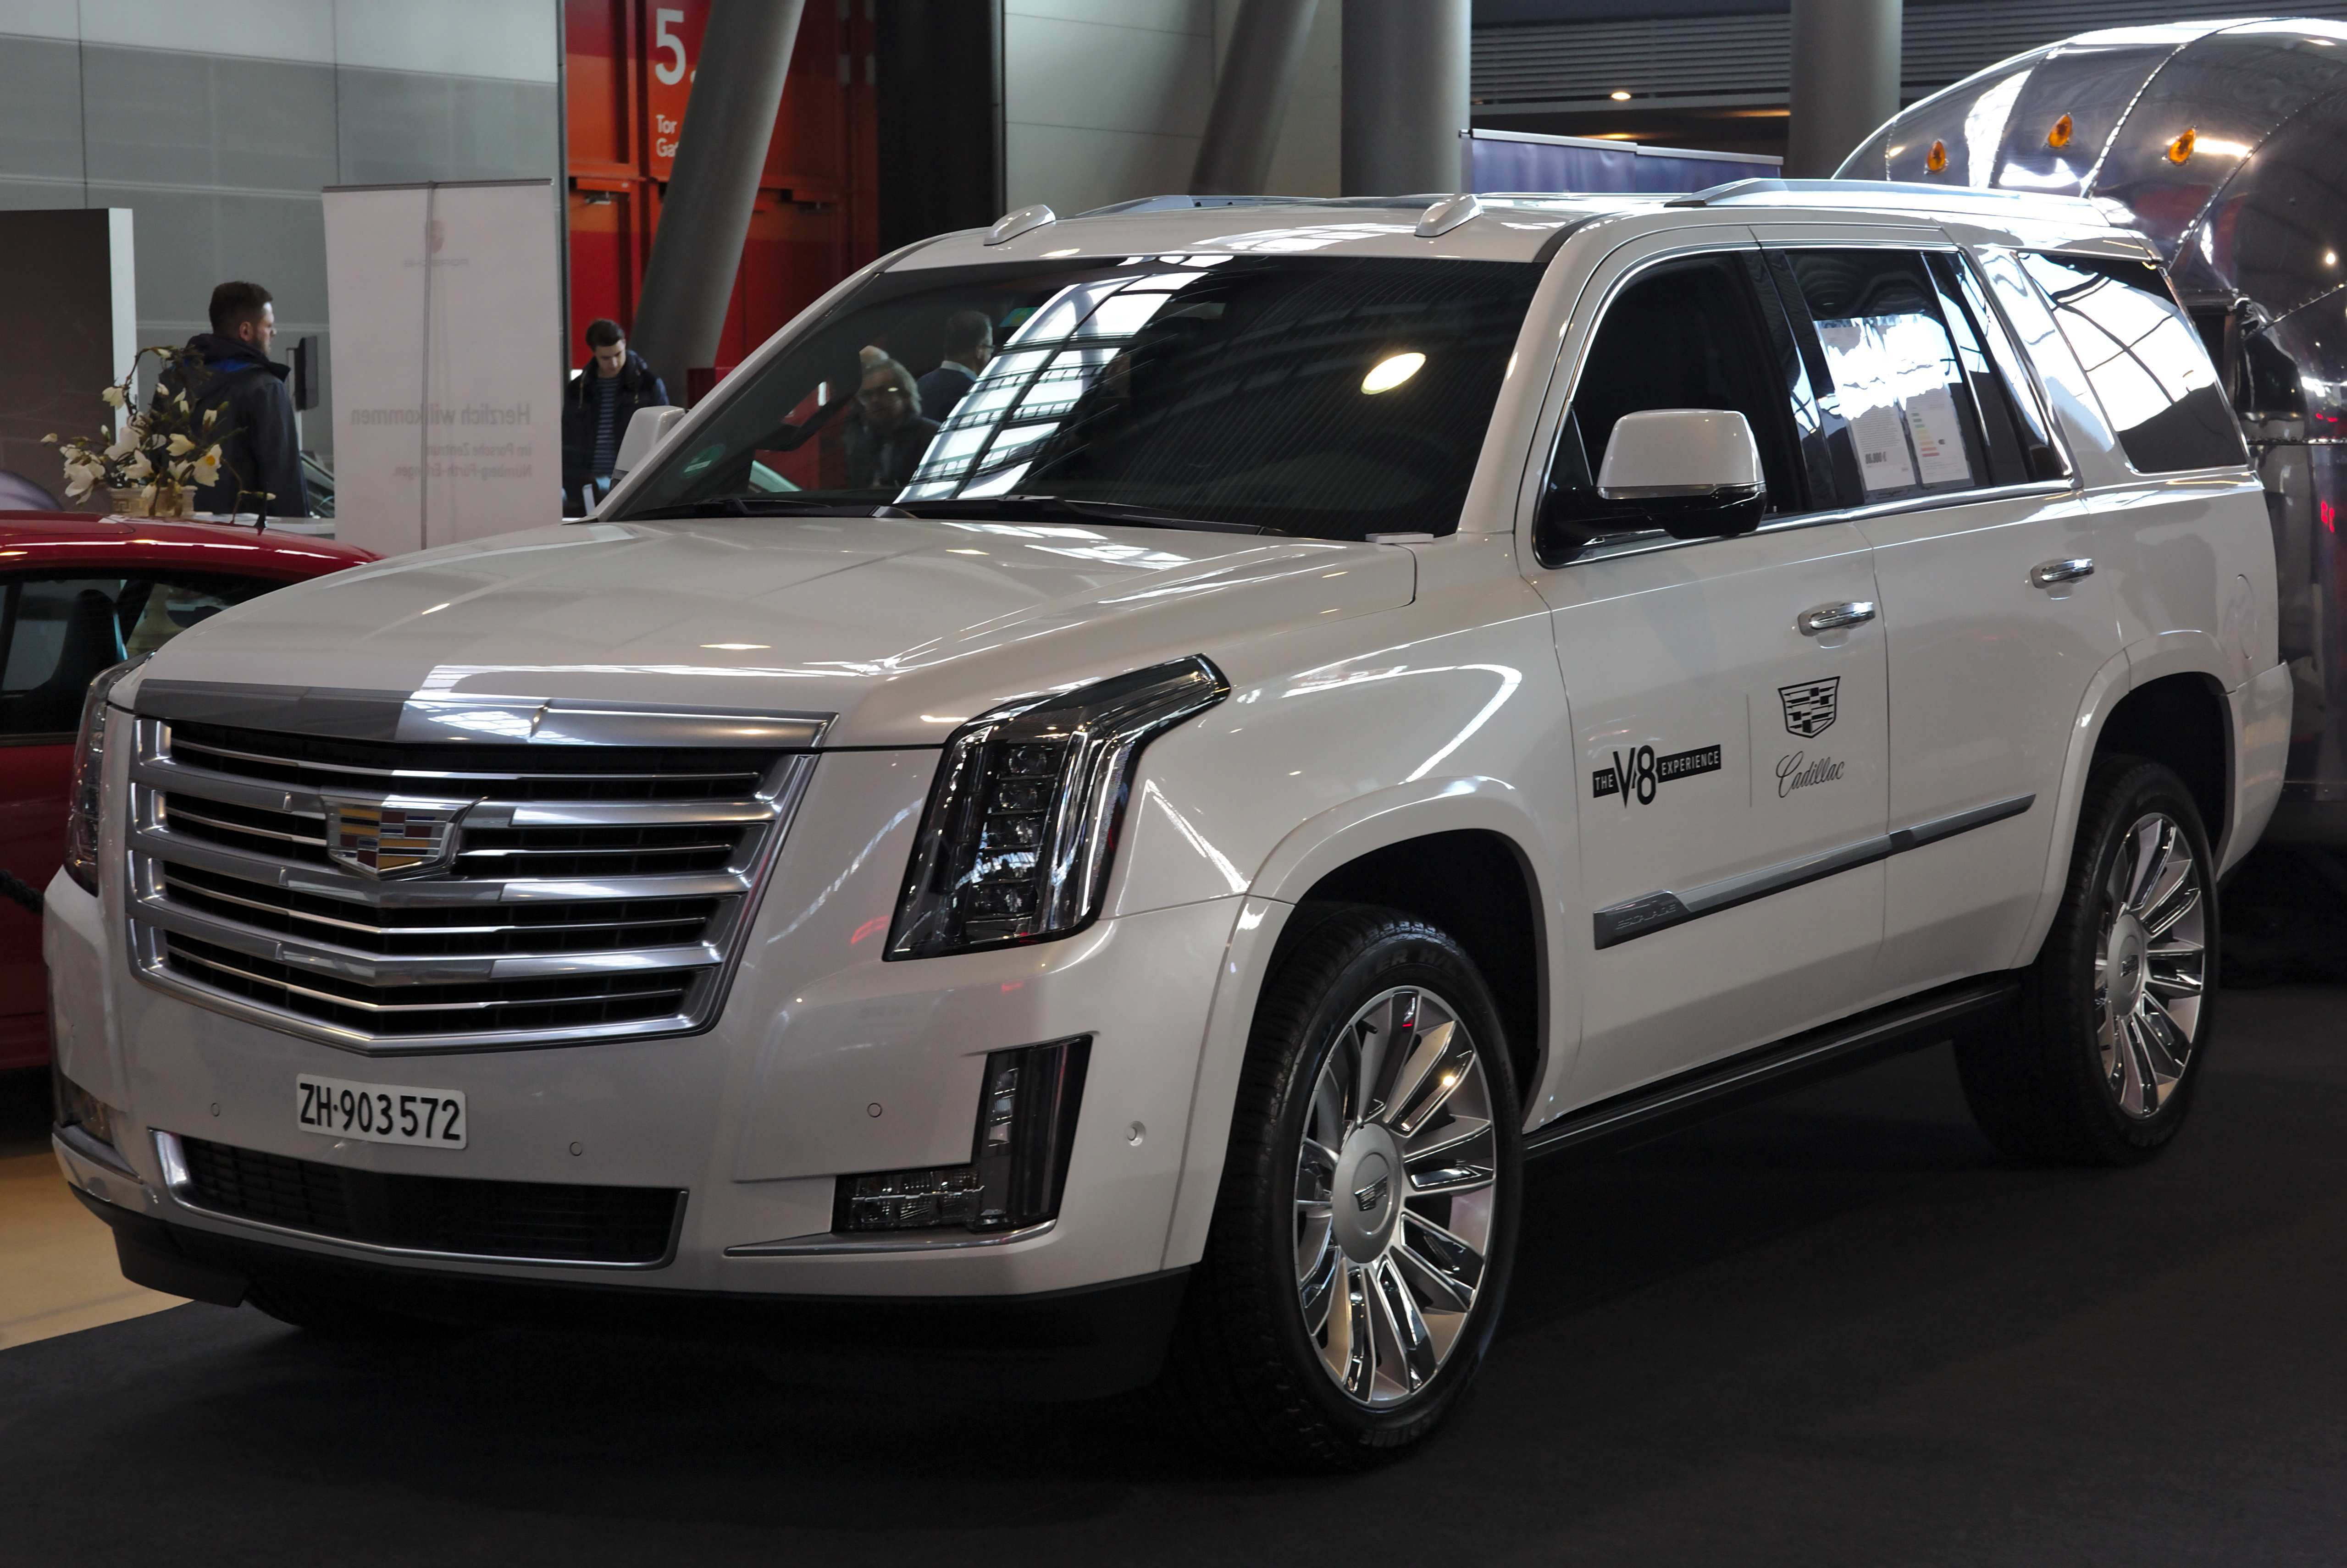 24 Gallery of 2020 Cadillac Escalade Body Style Change Speed Test by 2020 Cadillac Escalade Body Style Change